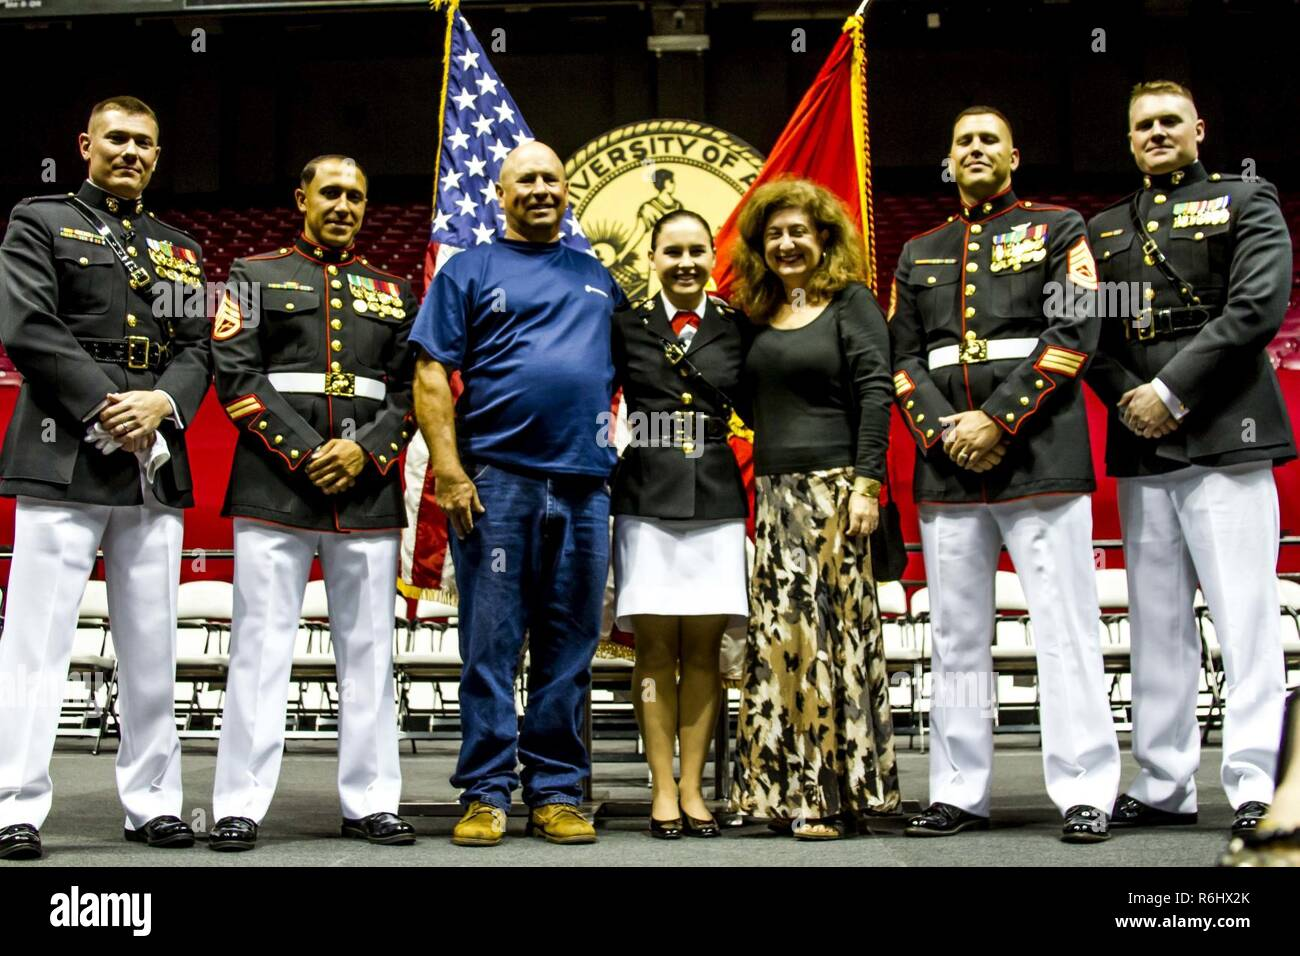 "Second Lieutenant Mary Sanders poses with Marines with the officer selection team for Recruiting Station Montgomery and family members after her commissioning ceremony at Coleman Coliseum, May 12, 2017. Sanders is a recent graduate of Alabama State University and attended Platoon Leaders Course and Officer Candidate School before being commissioned. ""After a couple of weeks I saw how the Marine Corps worked and was hooked. I was so inspired and motivated that if I had any doubts before, they were gone. This was something I wanted to be a part of."" - Stock Image"